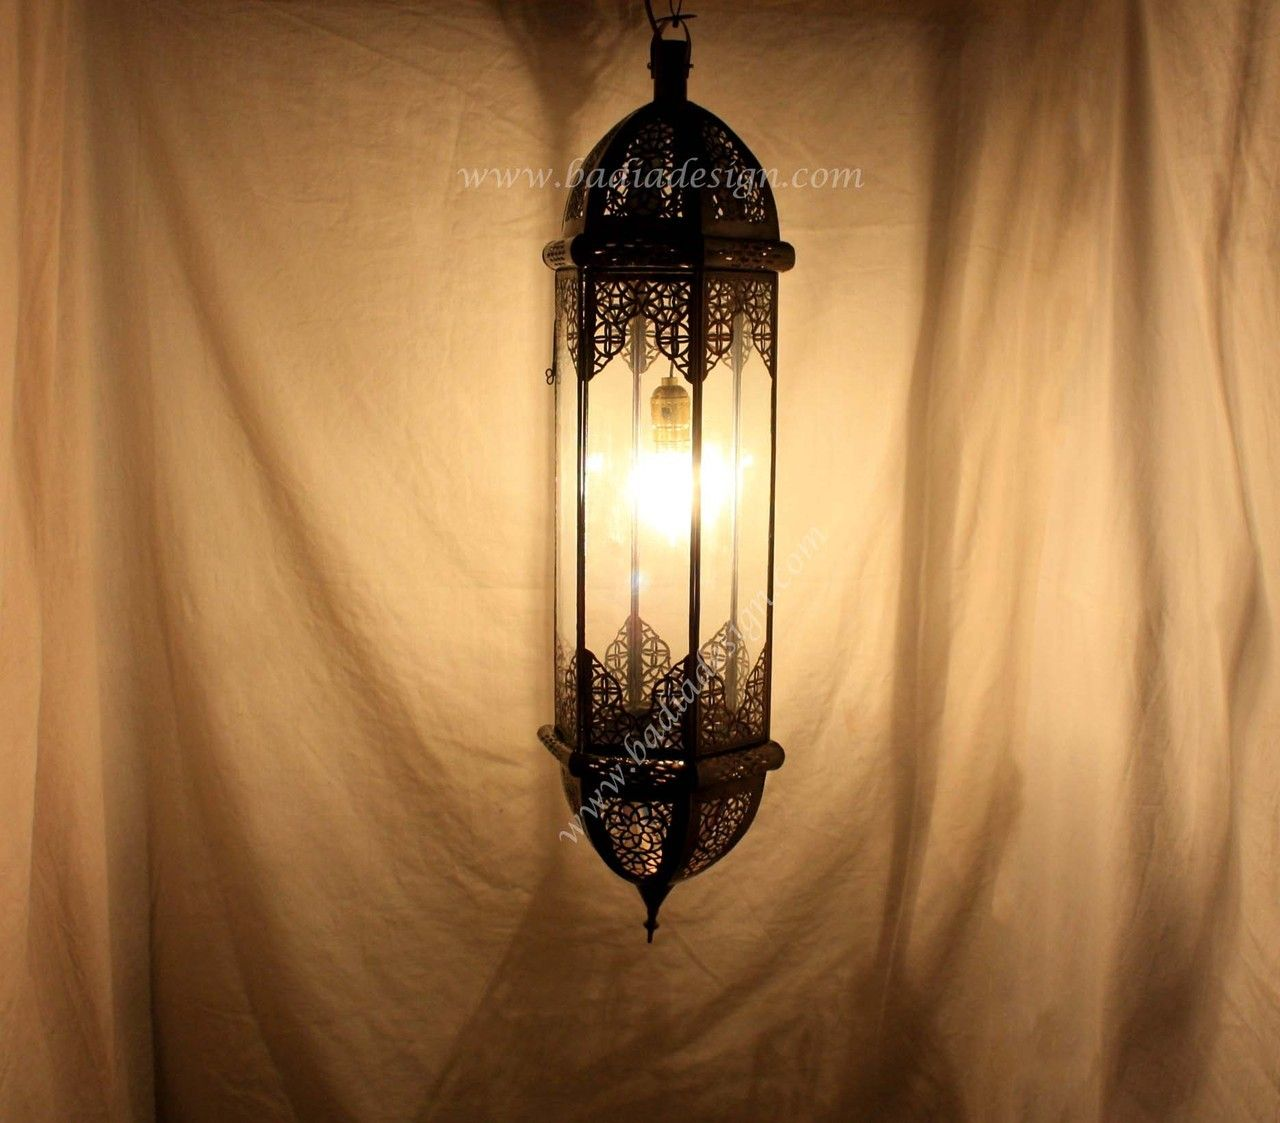 Perfect Badia Design Inc Store   Moroccan Hanging Lantern With Clear Glass    LIG128, $210.00 ( Good Looking